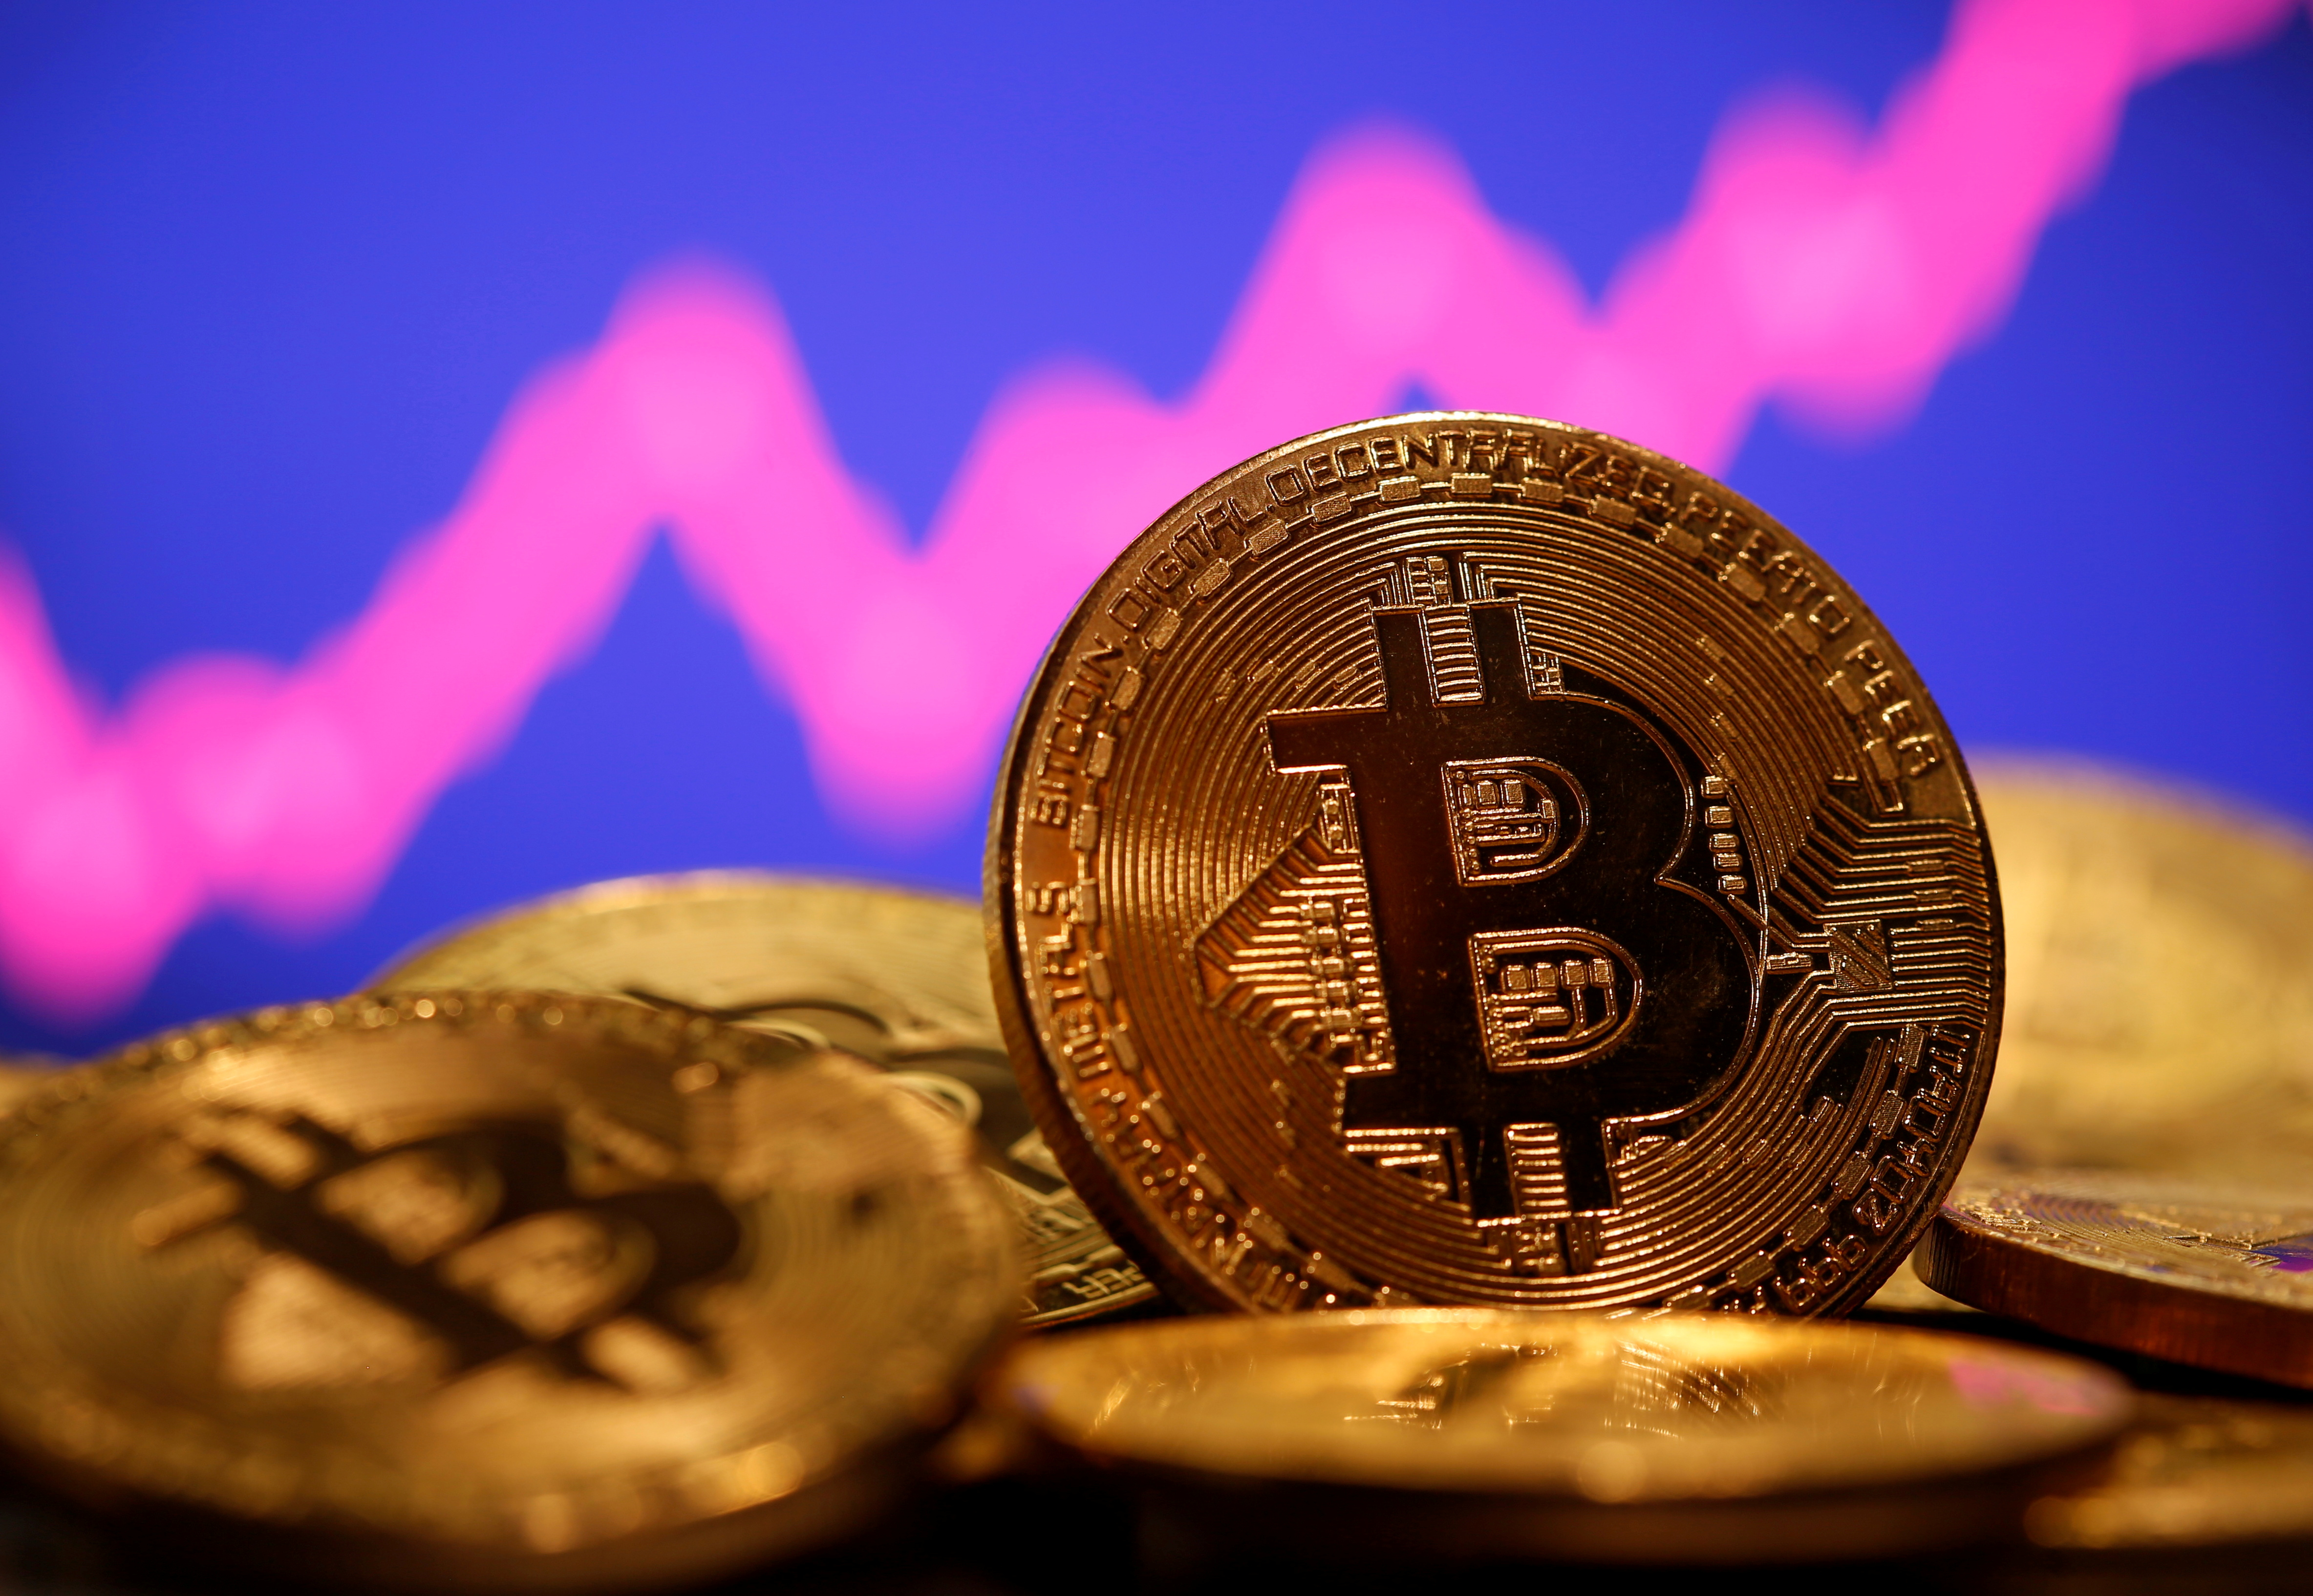 2021-01-11T011405Z_607247518_RC2D5L9A710E_RTRMADP_3_CRYPTO-CURRENCIES.JPG